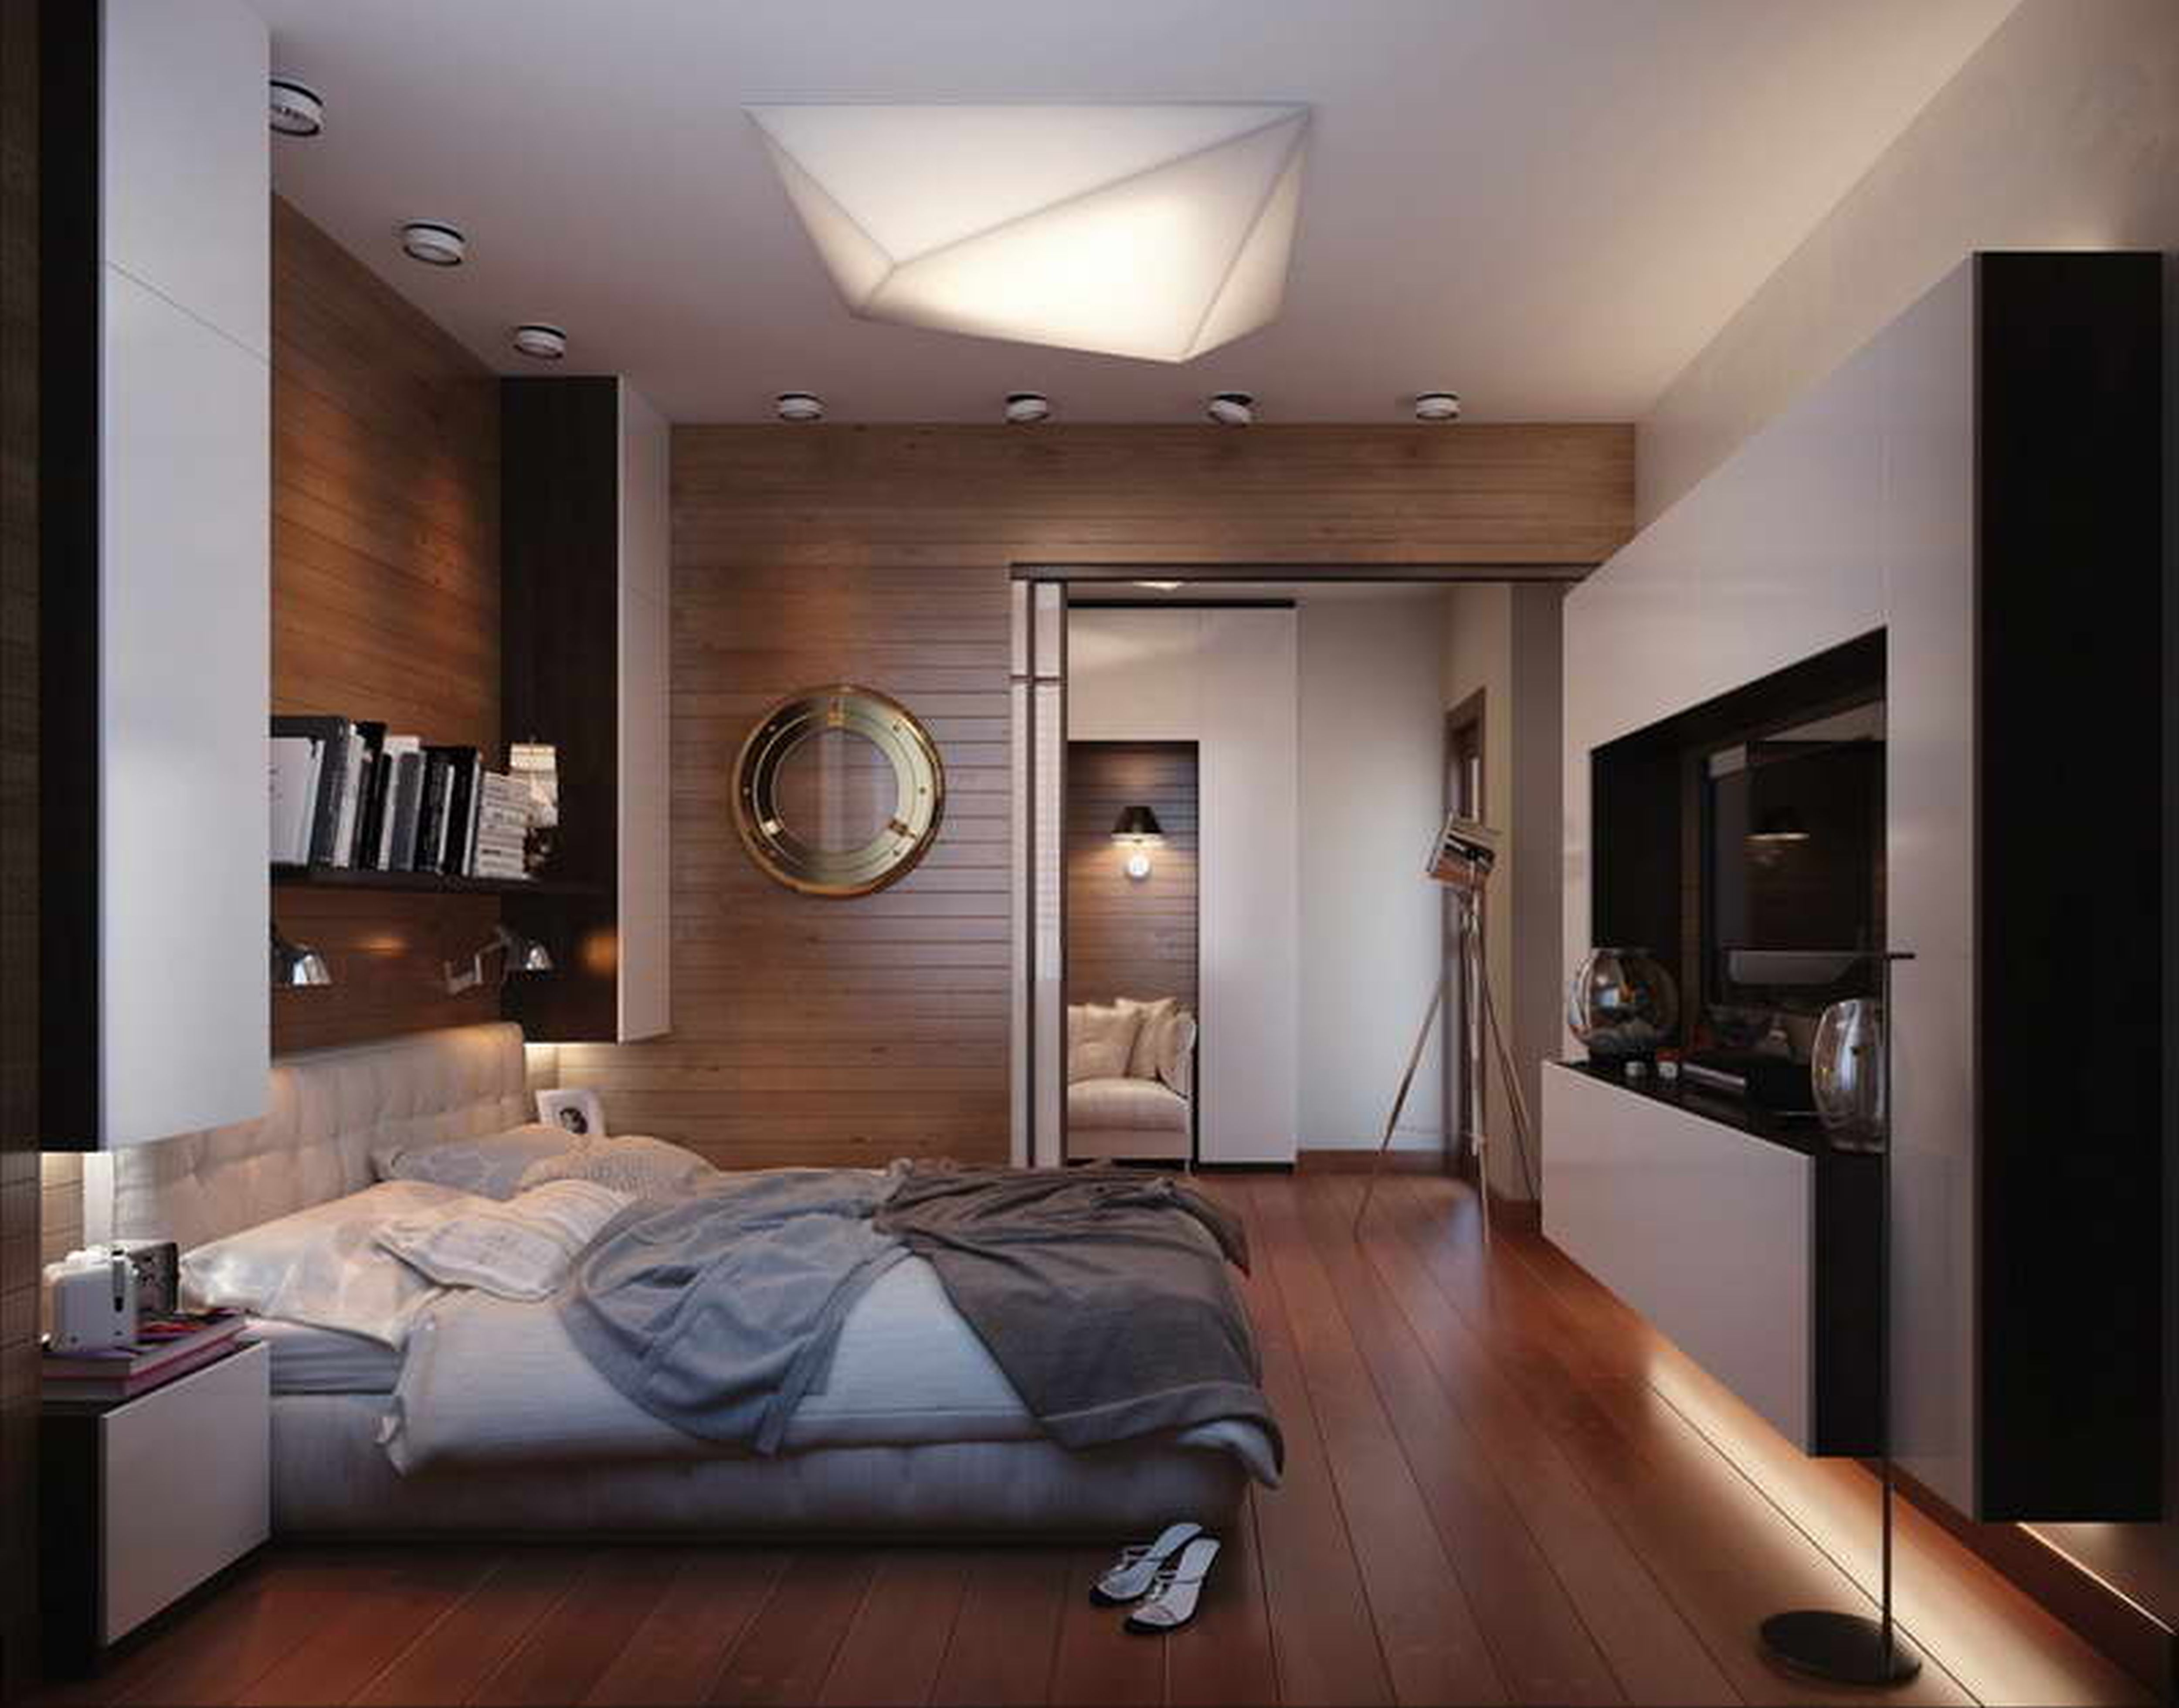 Captivating Ceiling Light Also Bed Under Mounted Book Shelve For Best  Bedroom